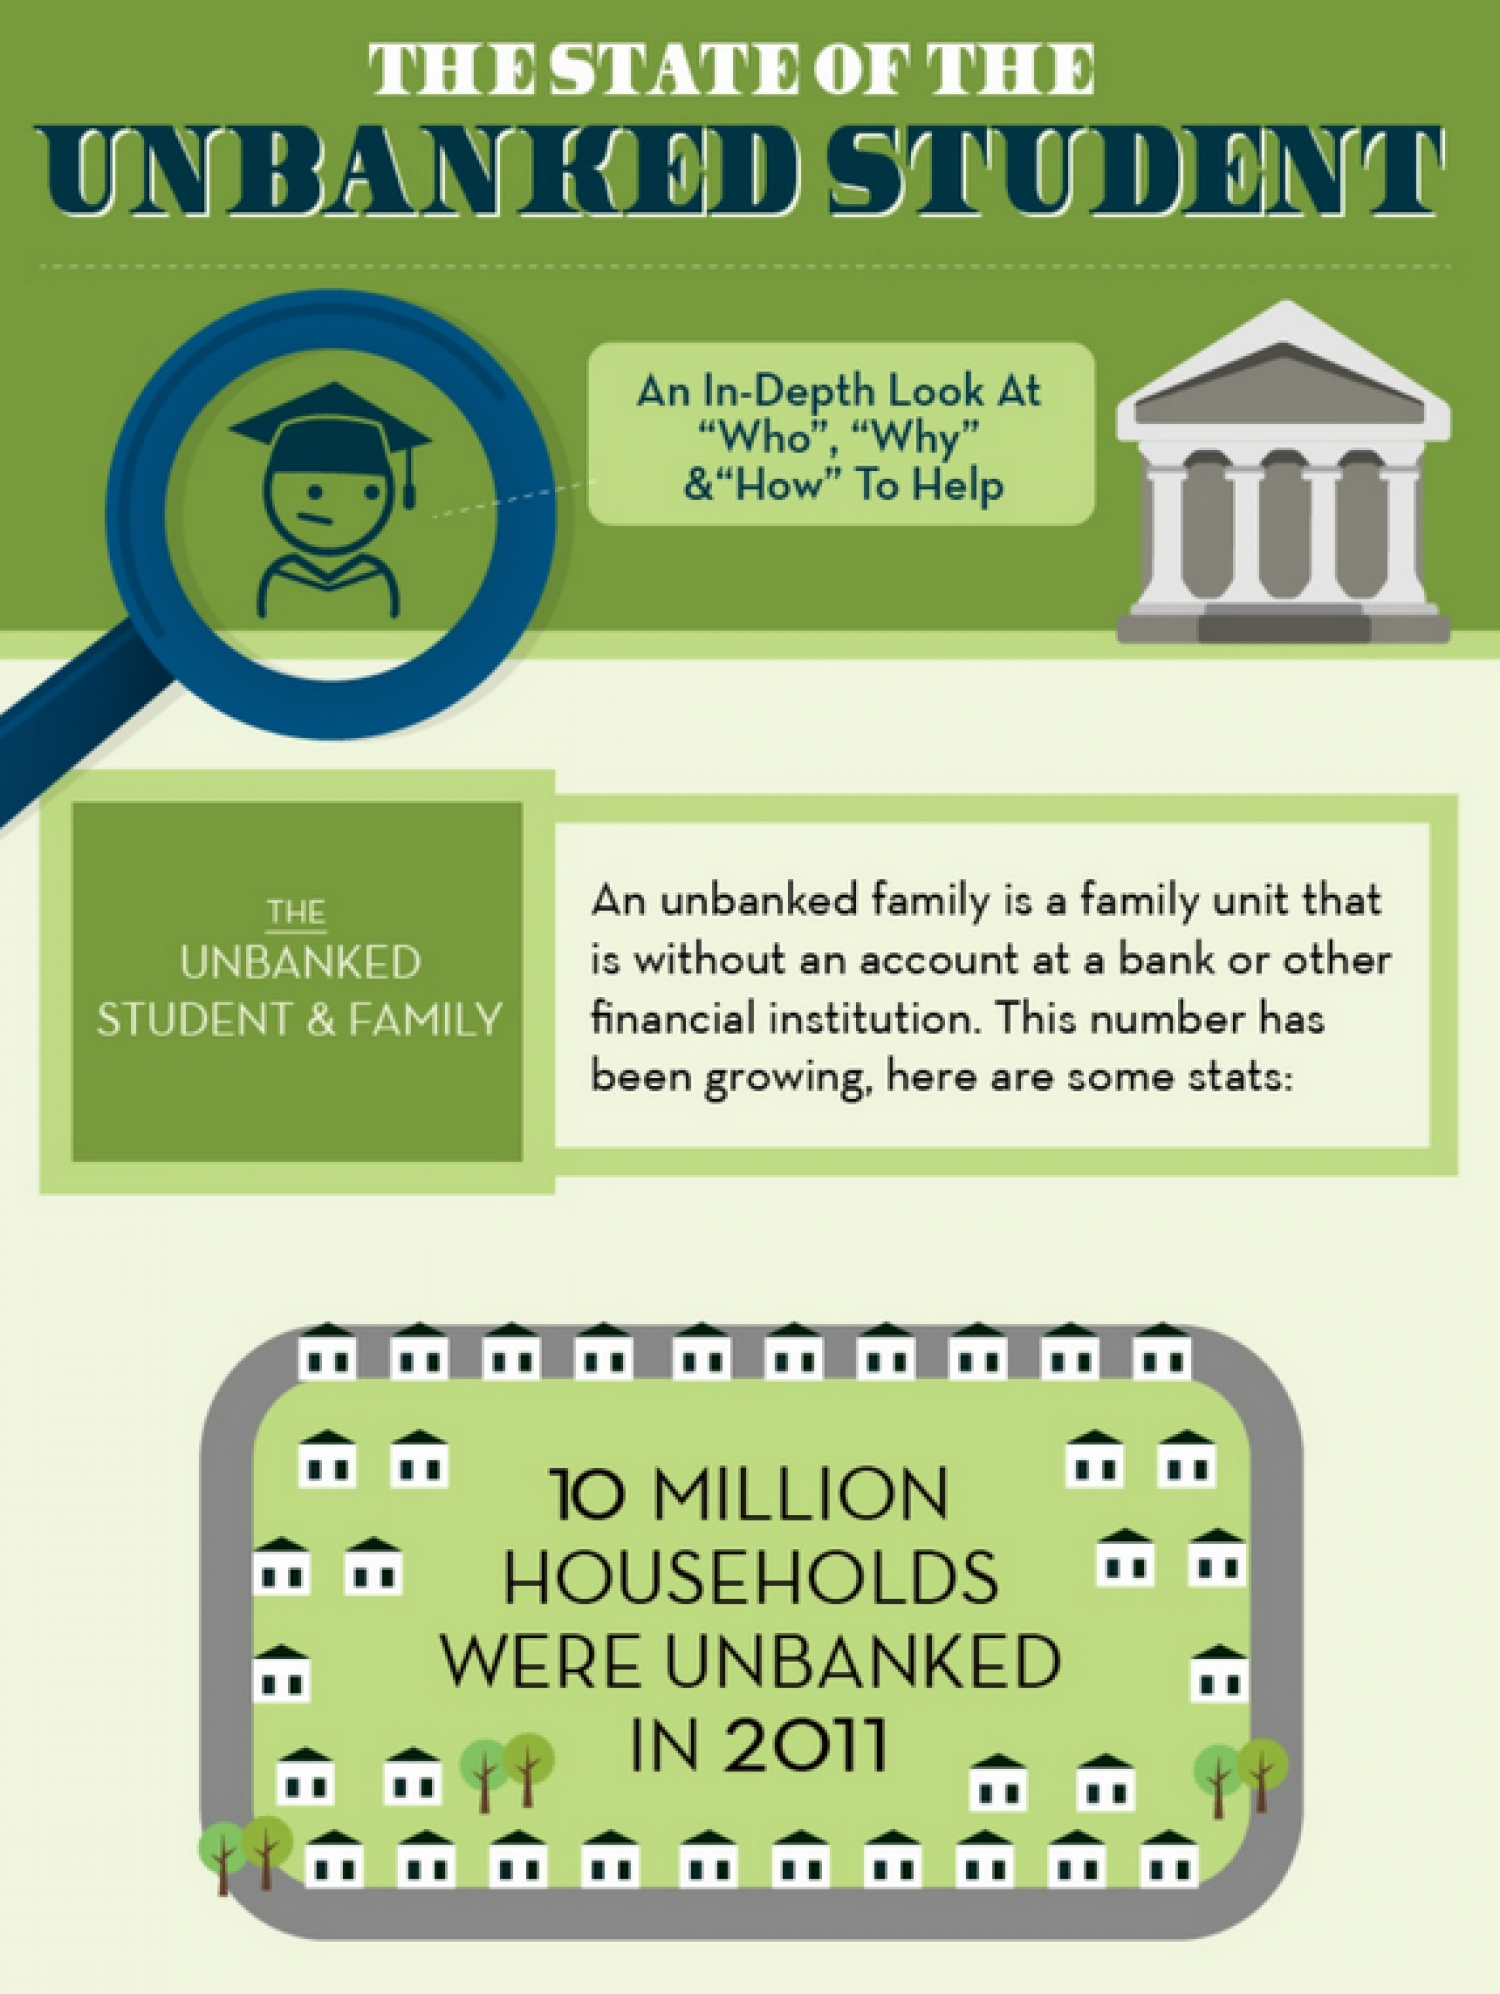 The Who, The Why and The How of Helping Unbanked Students Infographic